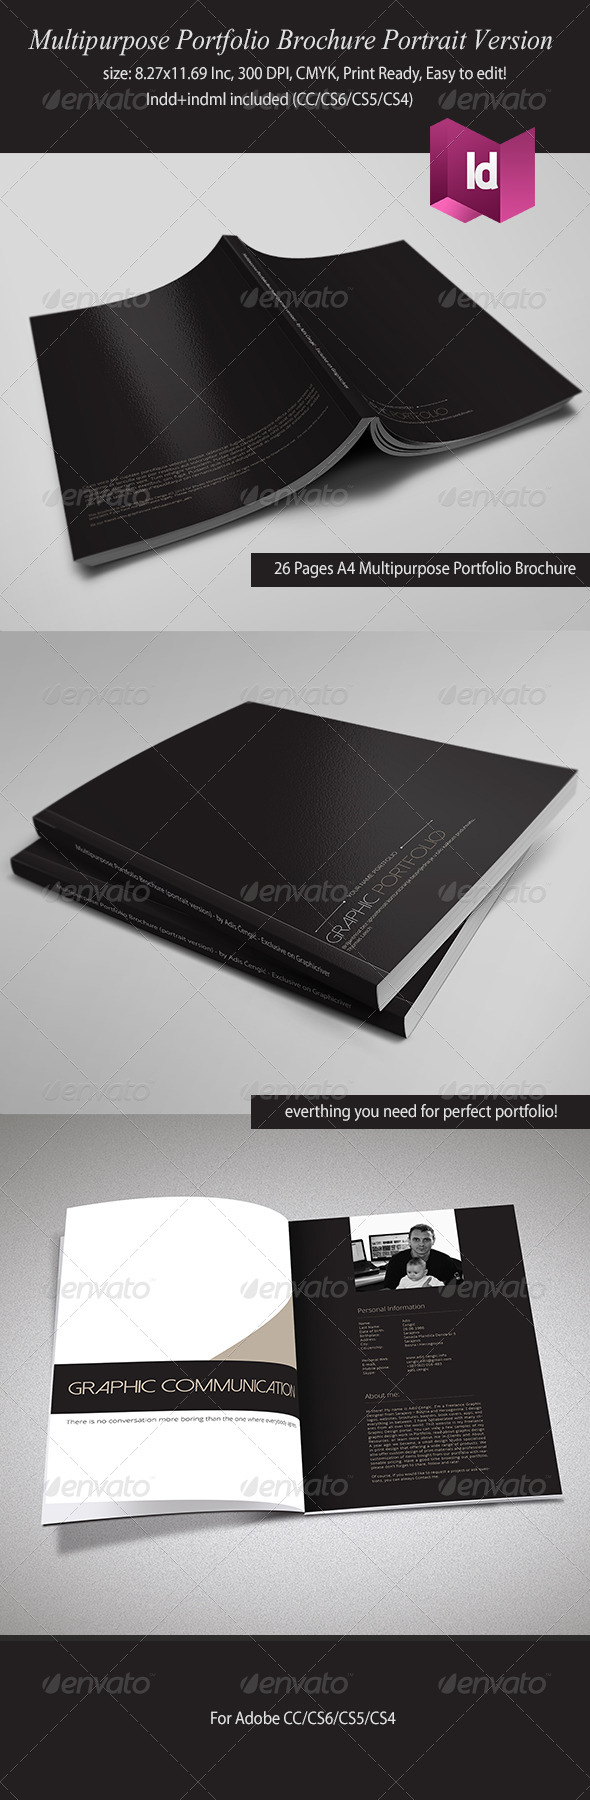 GraphicRiver Multipurpose Portfolio Brochure Portrait Version 6250154